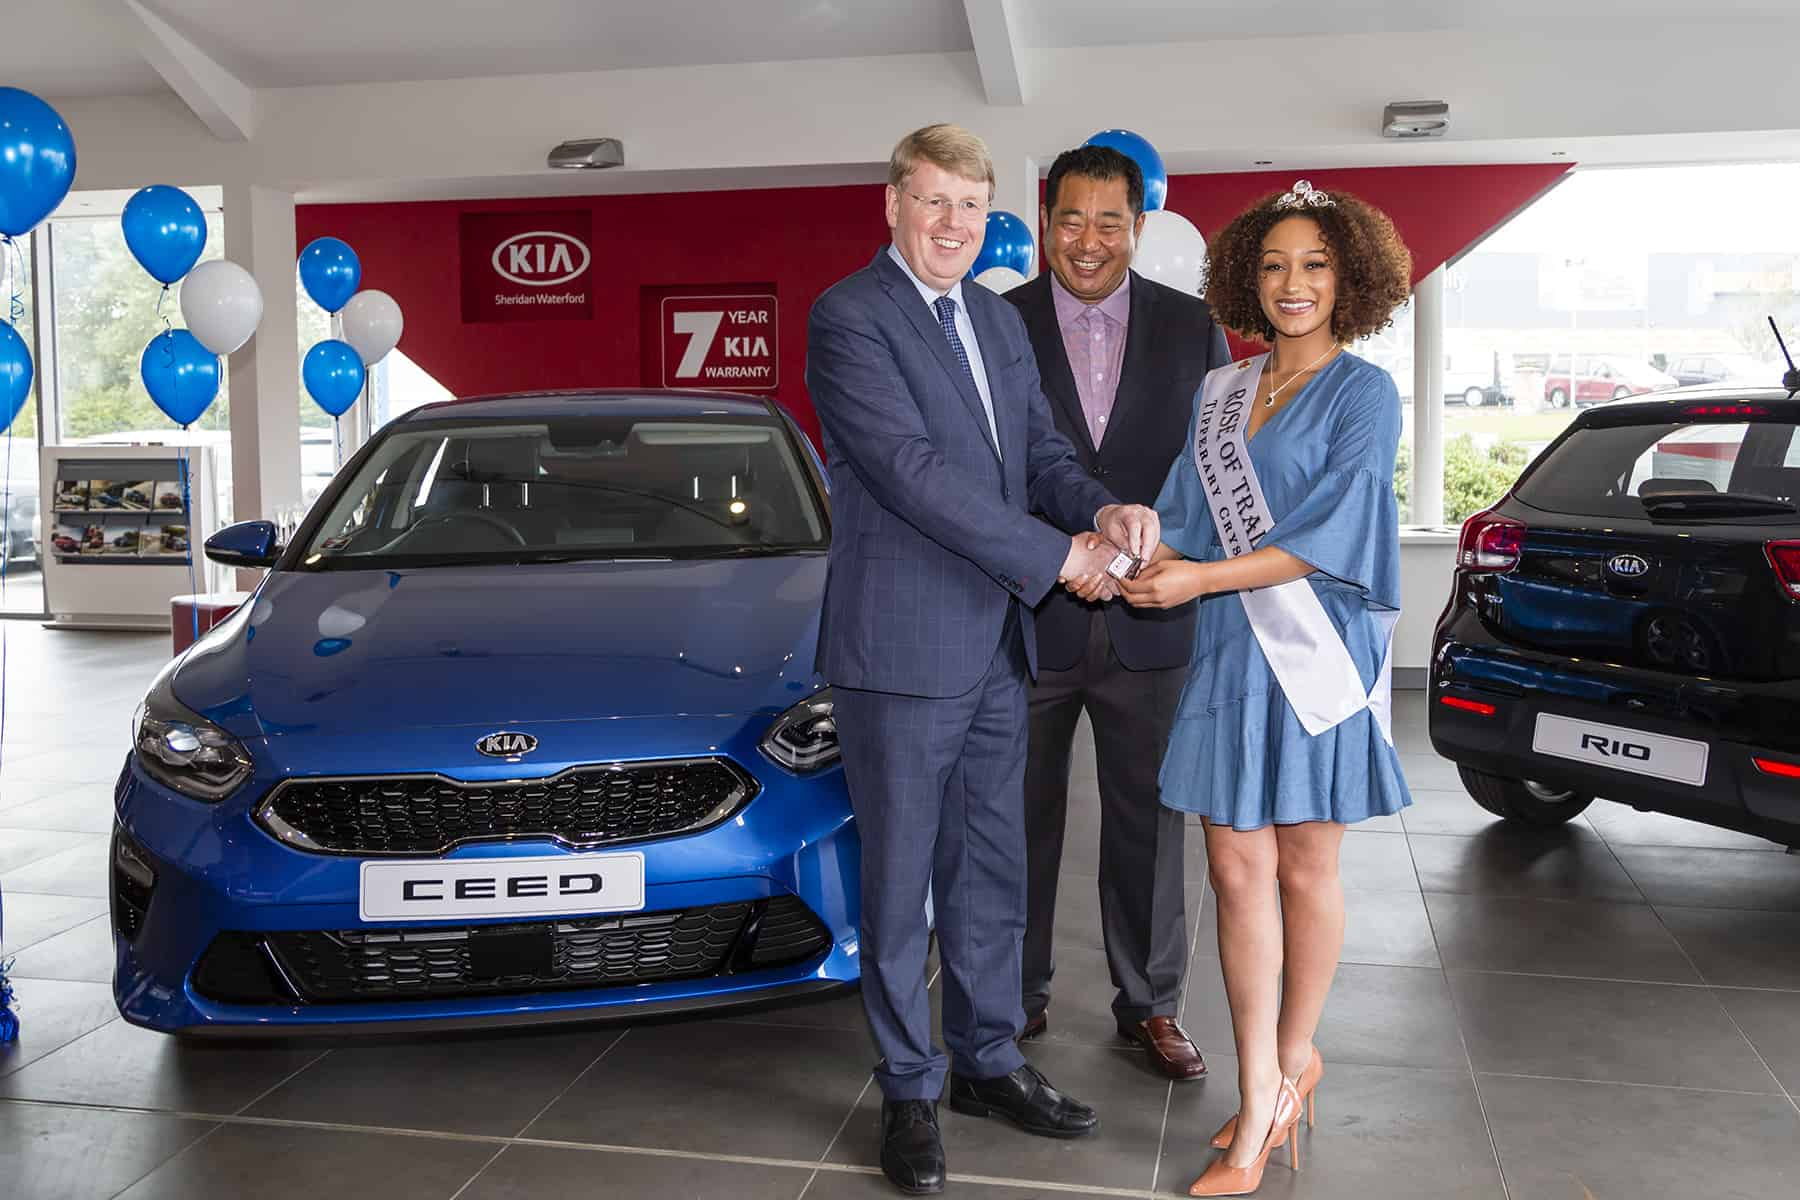 The Rose of Tralee collects her new KIA Ceed